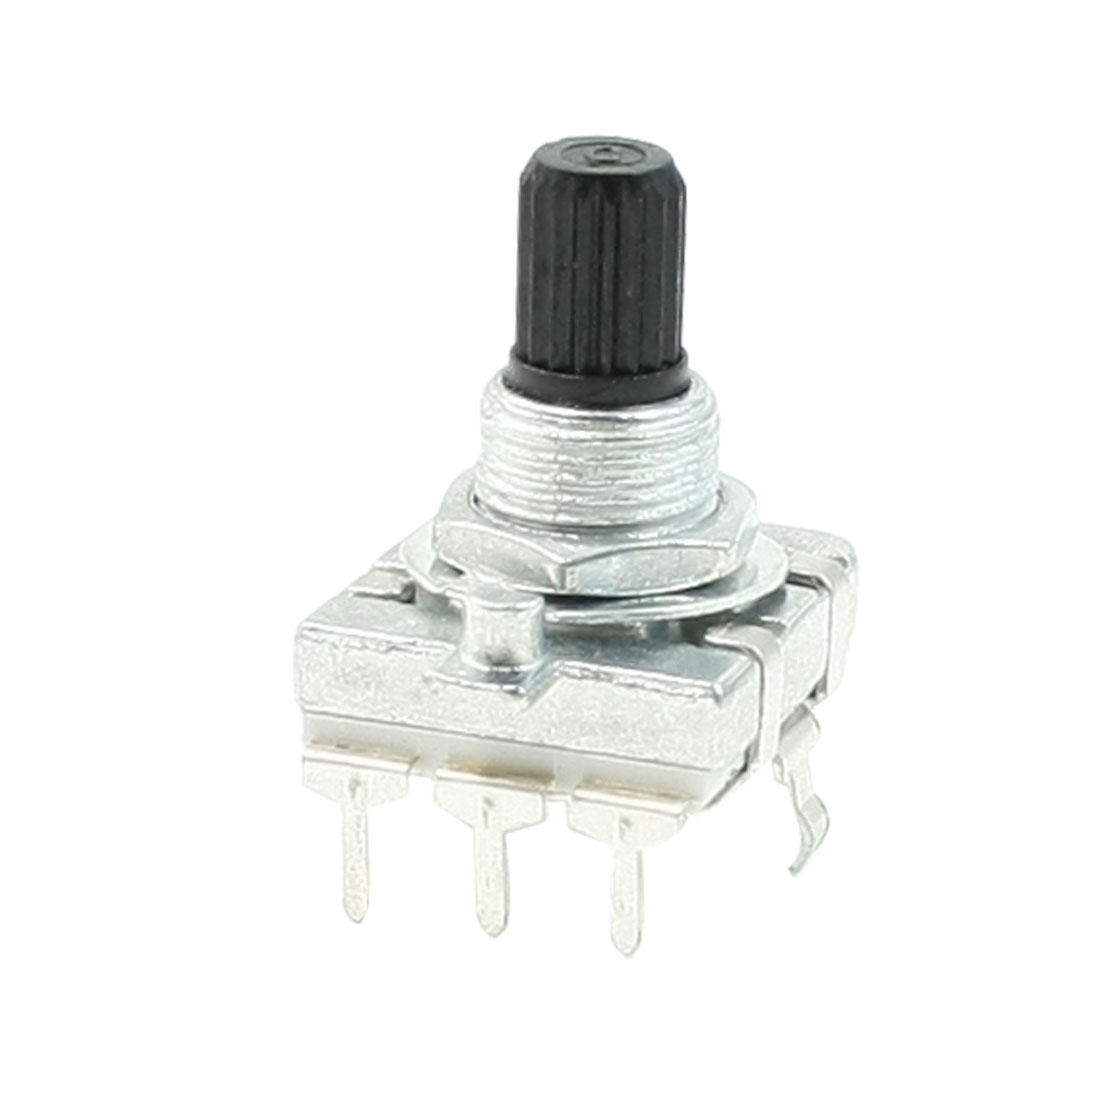 20K ohm 8.5mm Insulated Thread Rotary Potentiometers R0903N